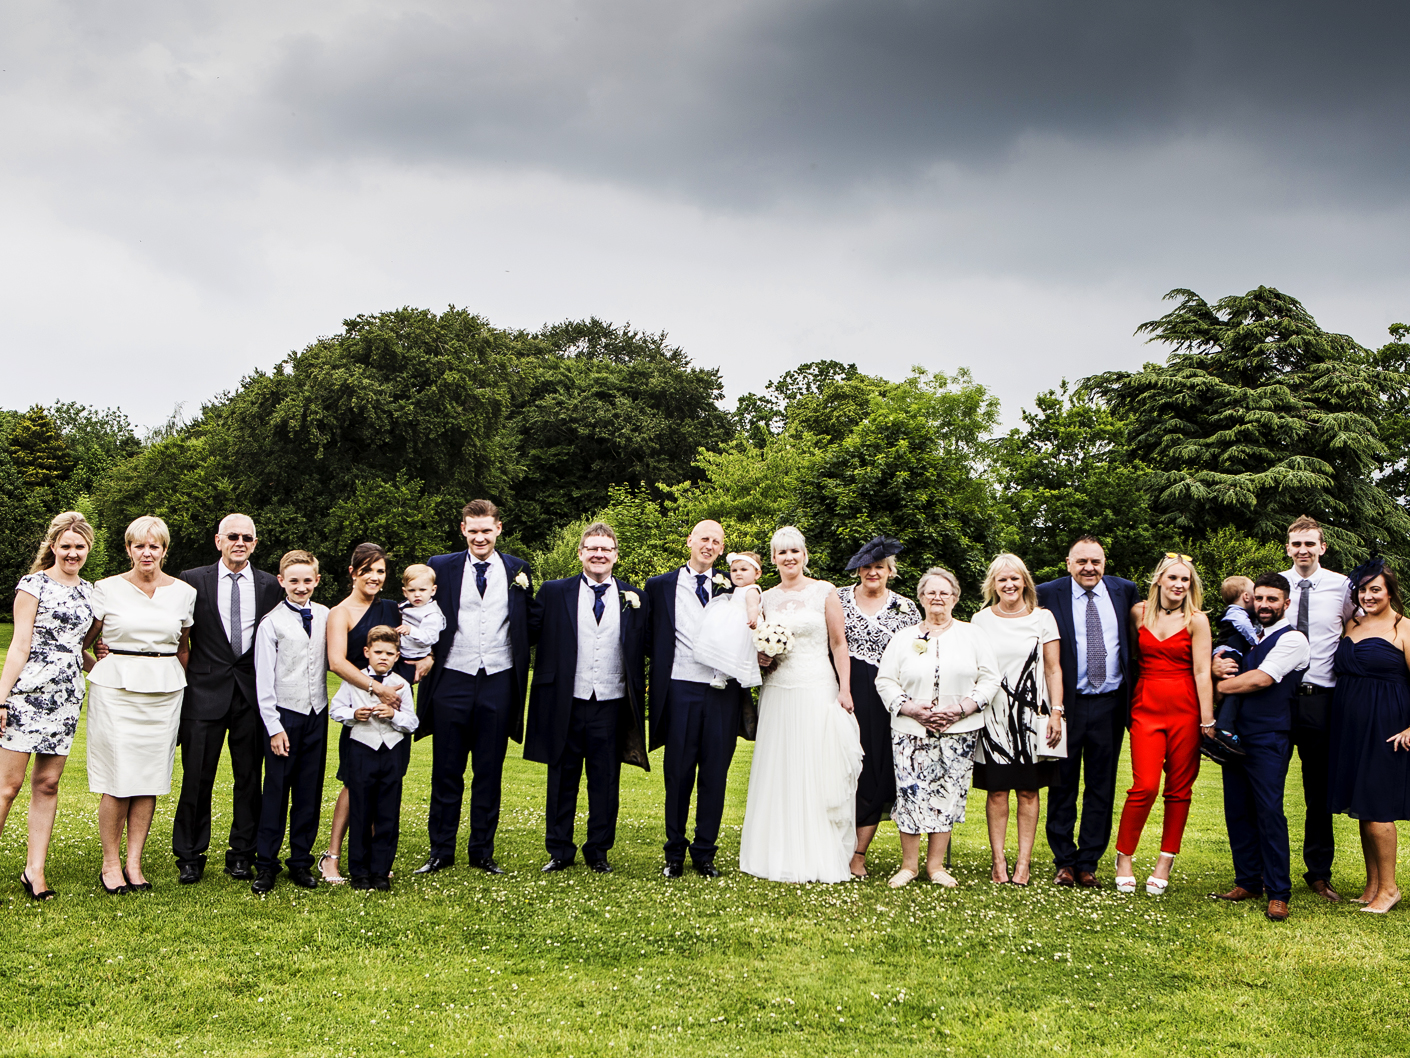 wedding-photography-of-the-group-shots-at-cranage-hall-cheshire